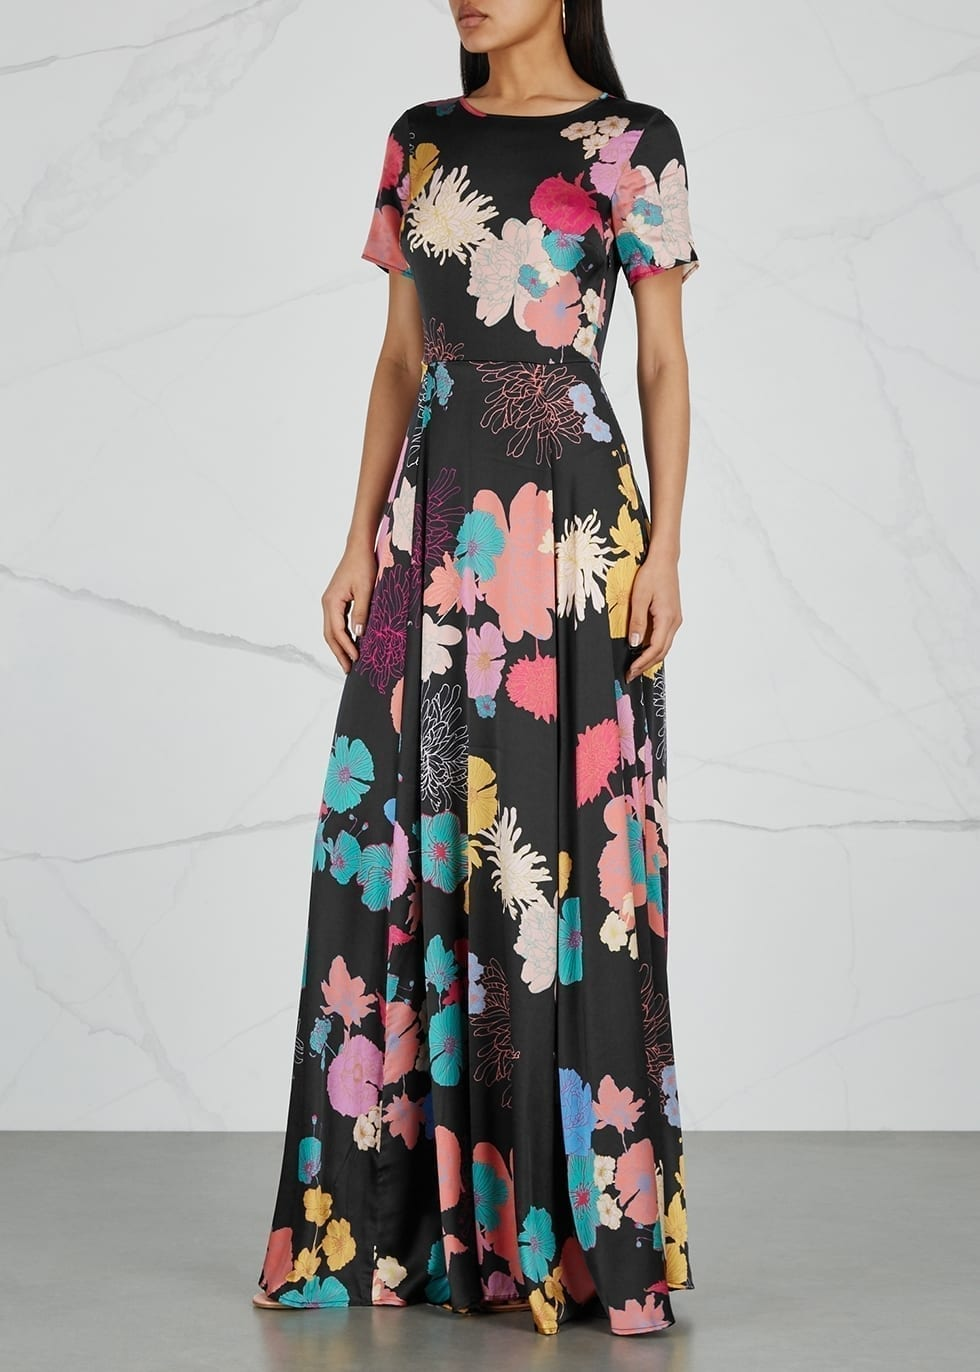 STINE GOYA Nanna Satin Maxi Black / Floral Printed Dress